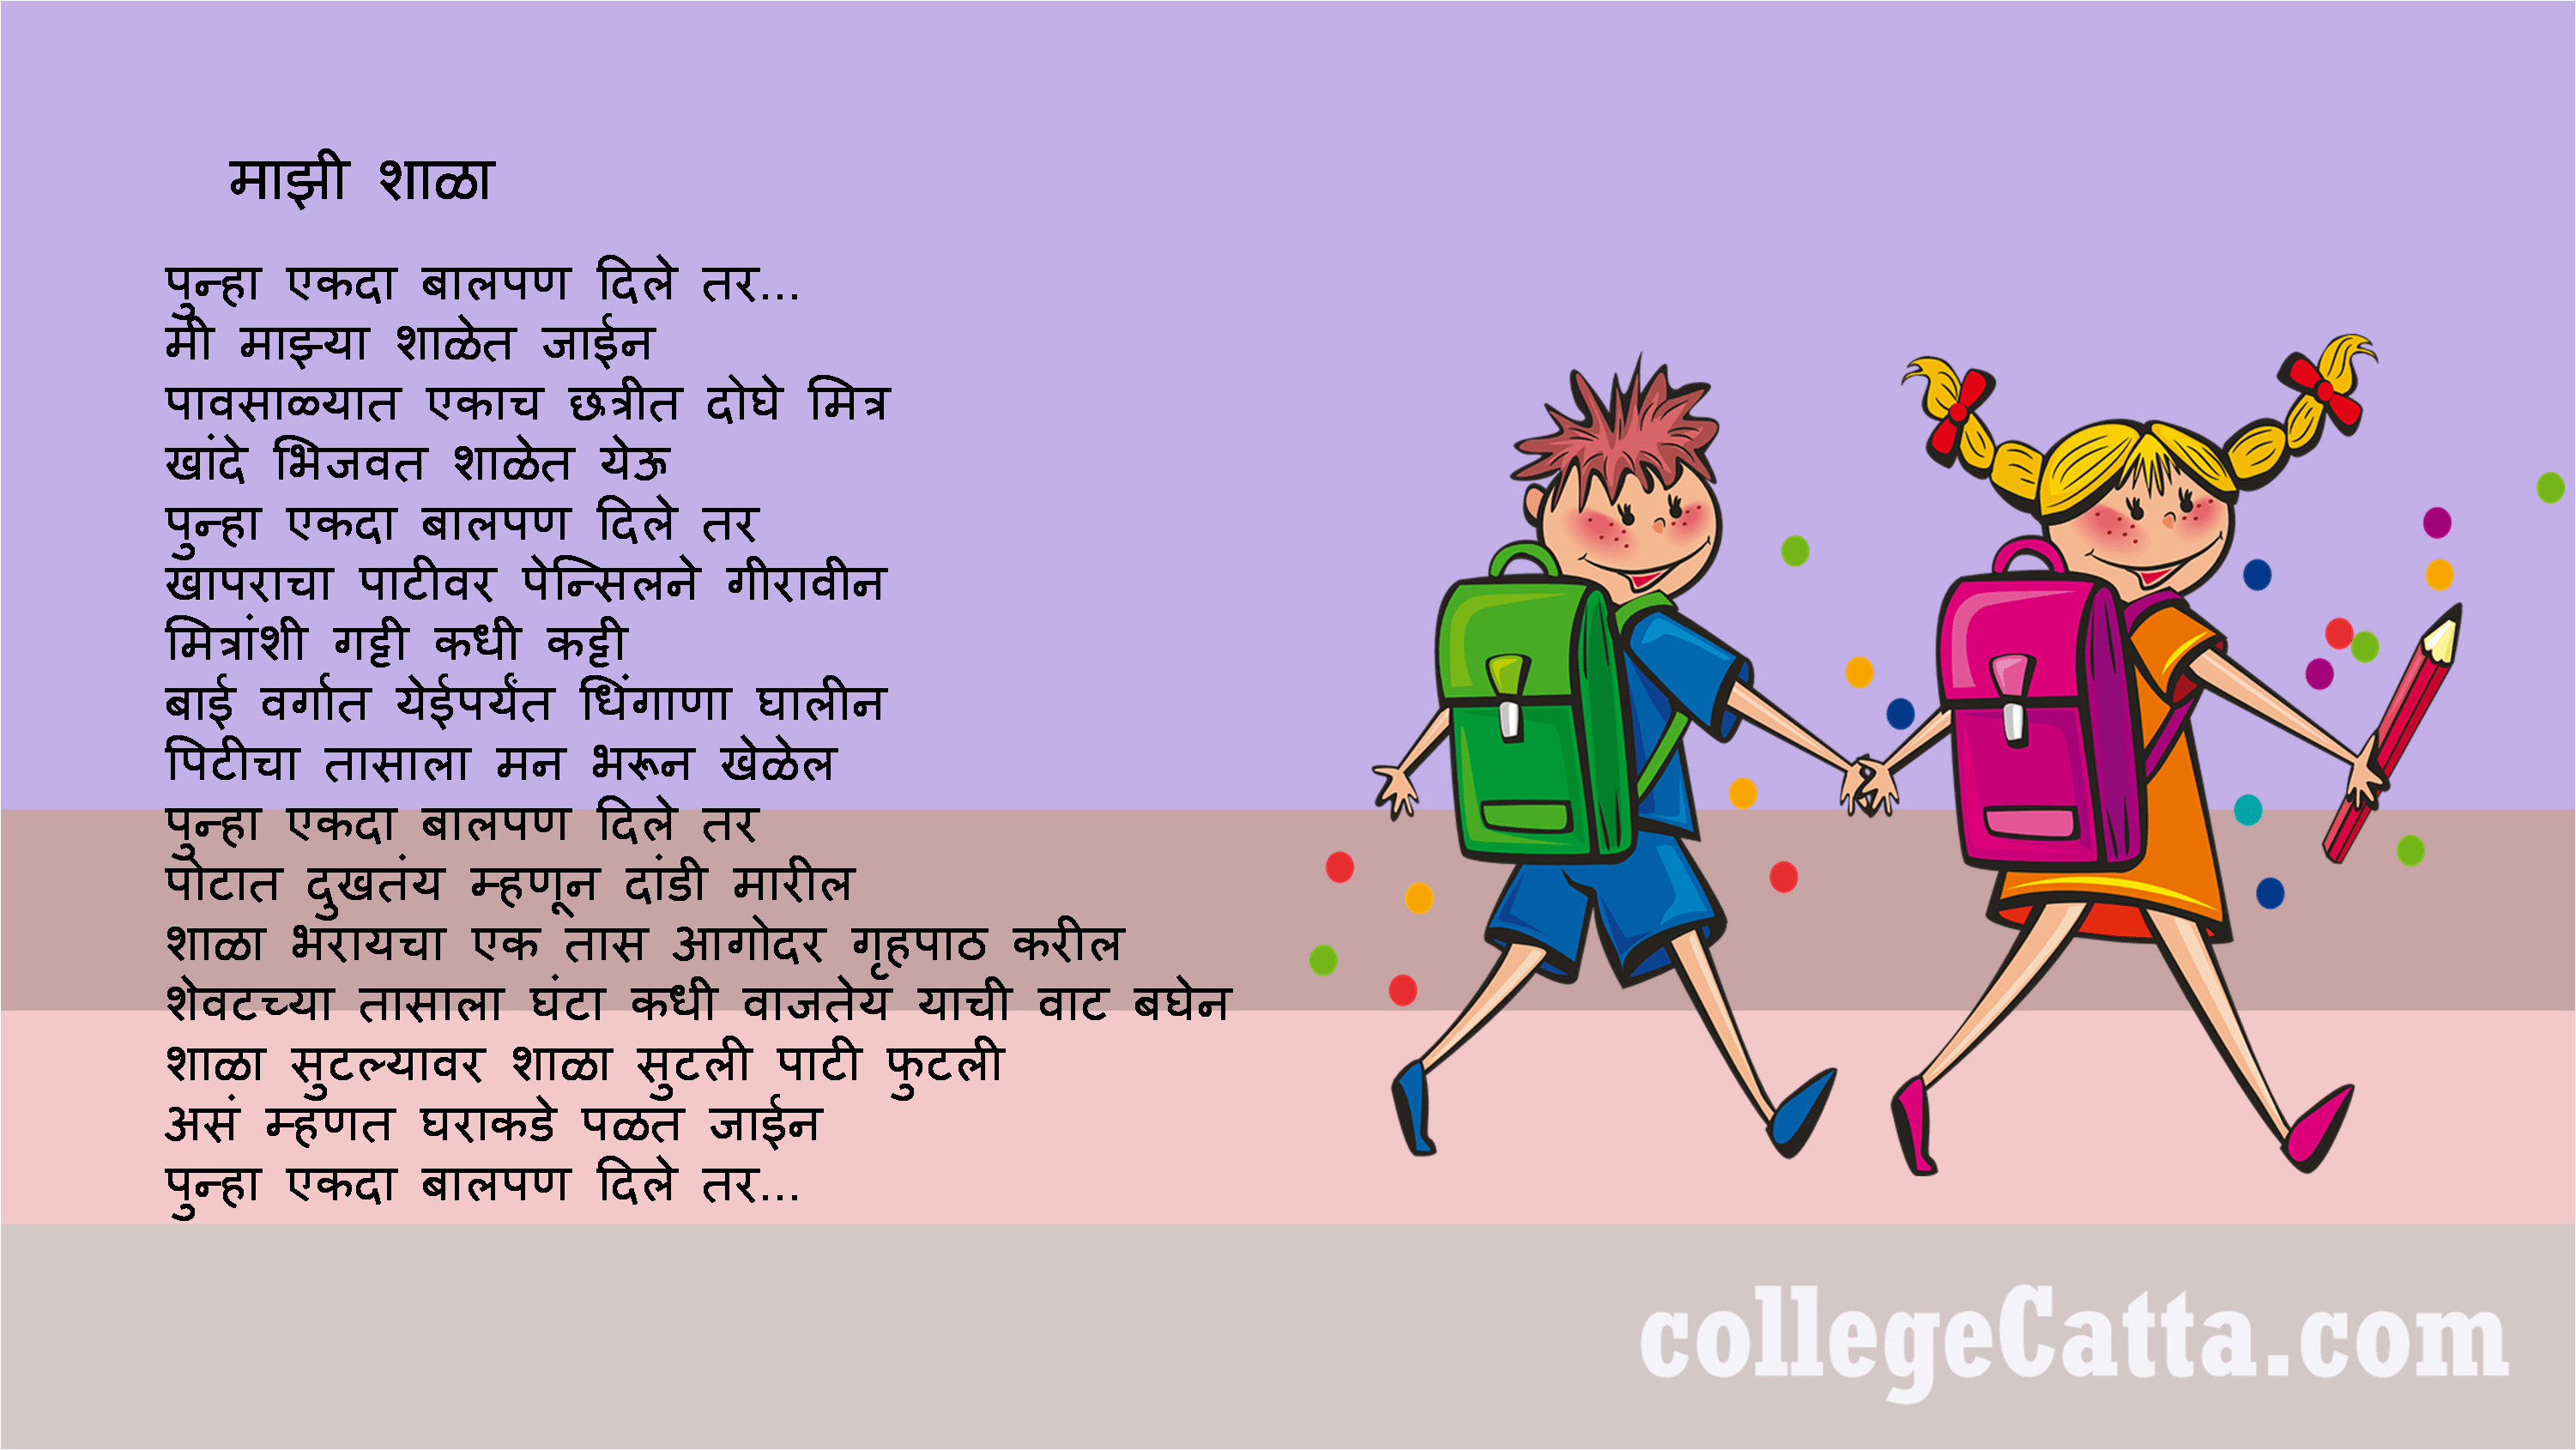 My school poem in Marathi